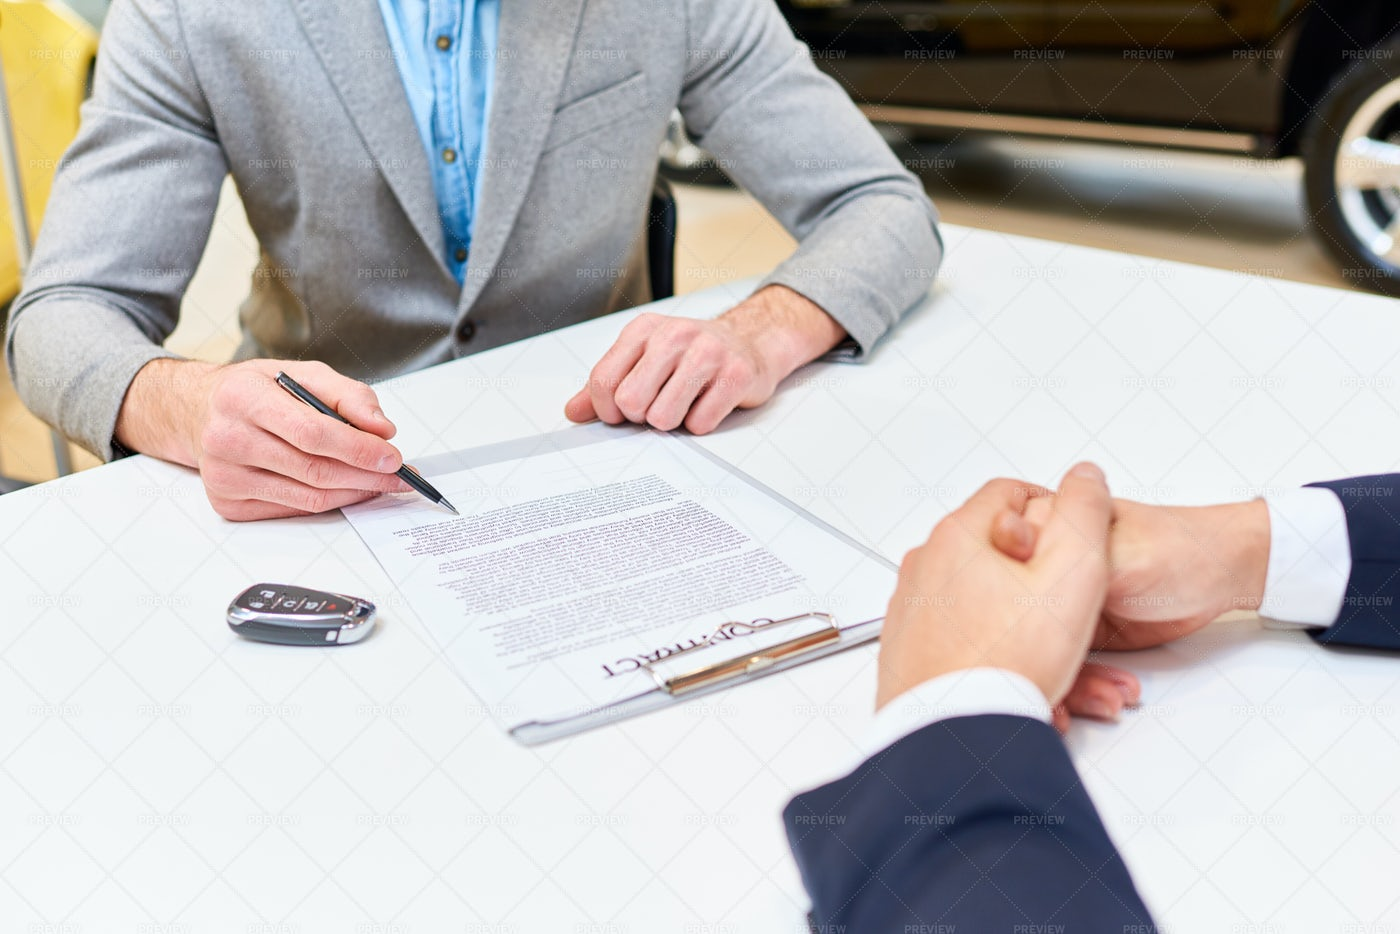 Man Signing Papers To Buy Car: Stock Photos